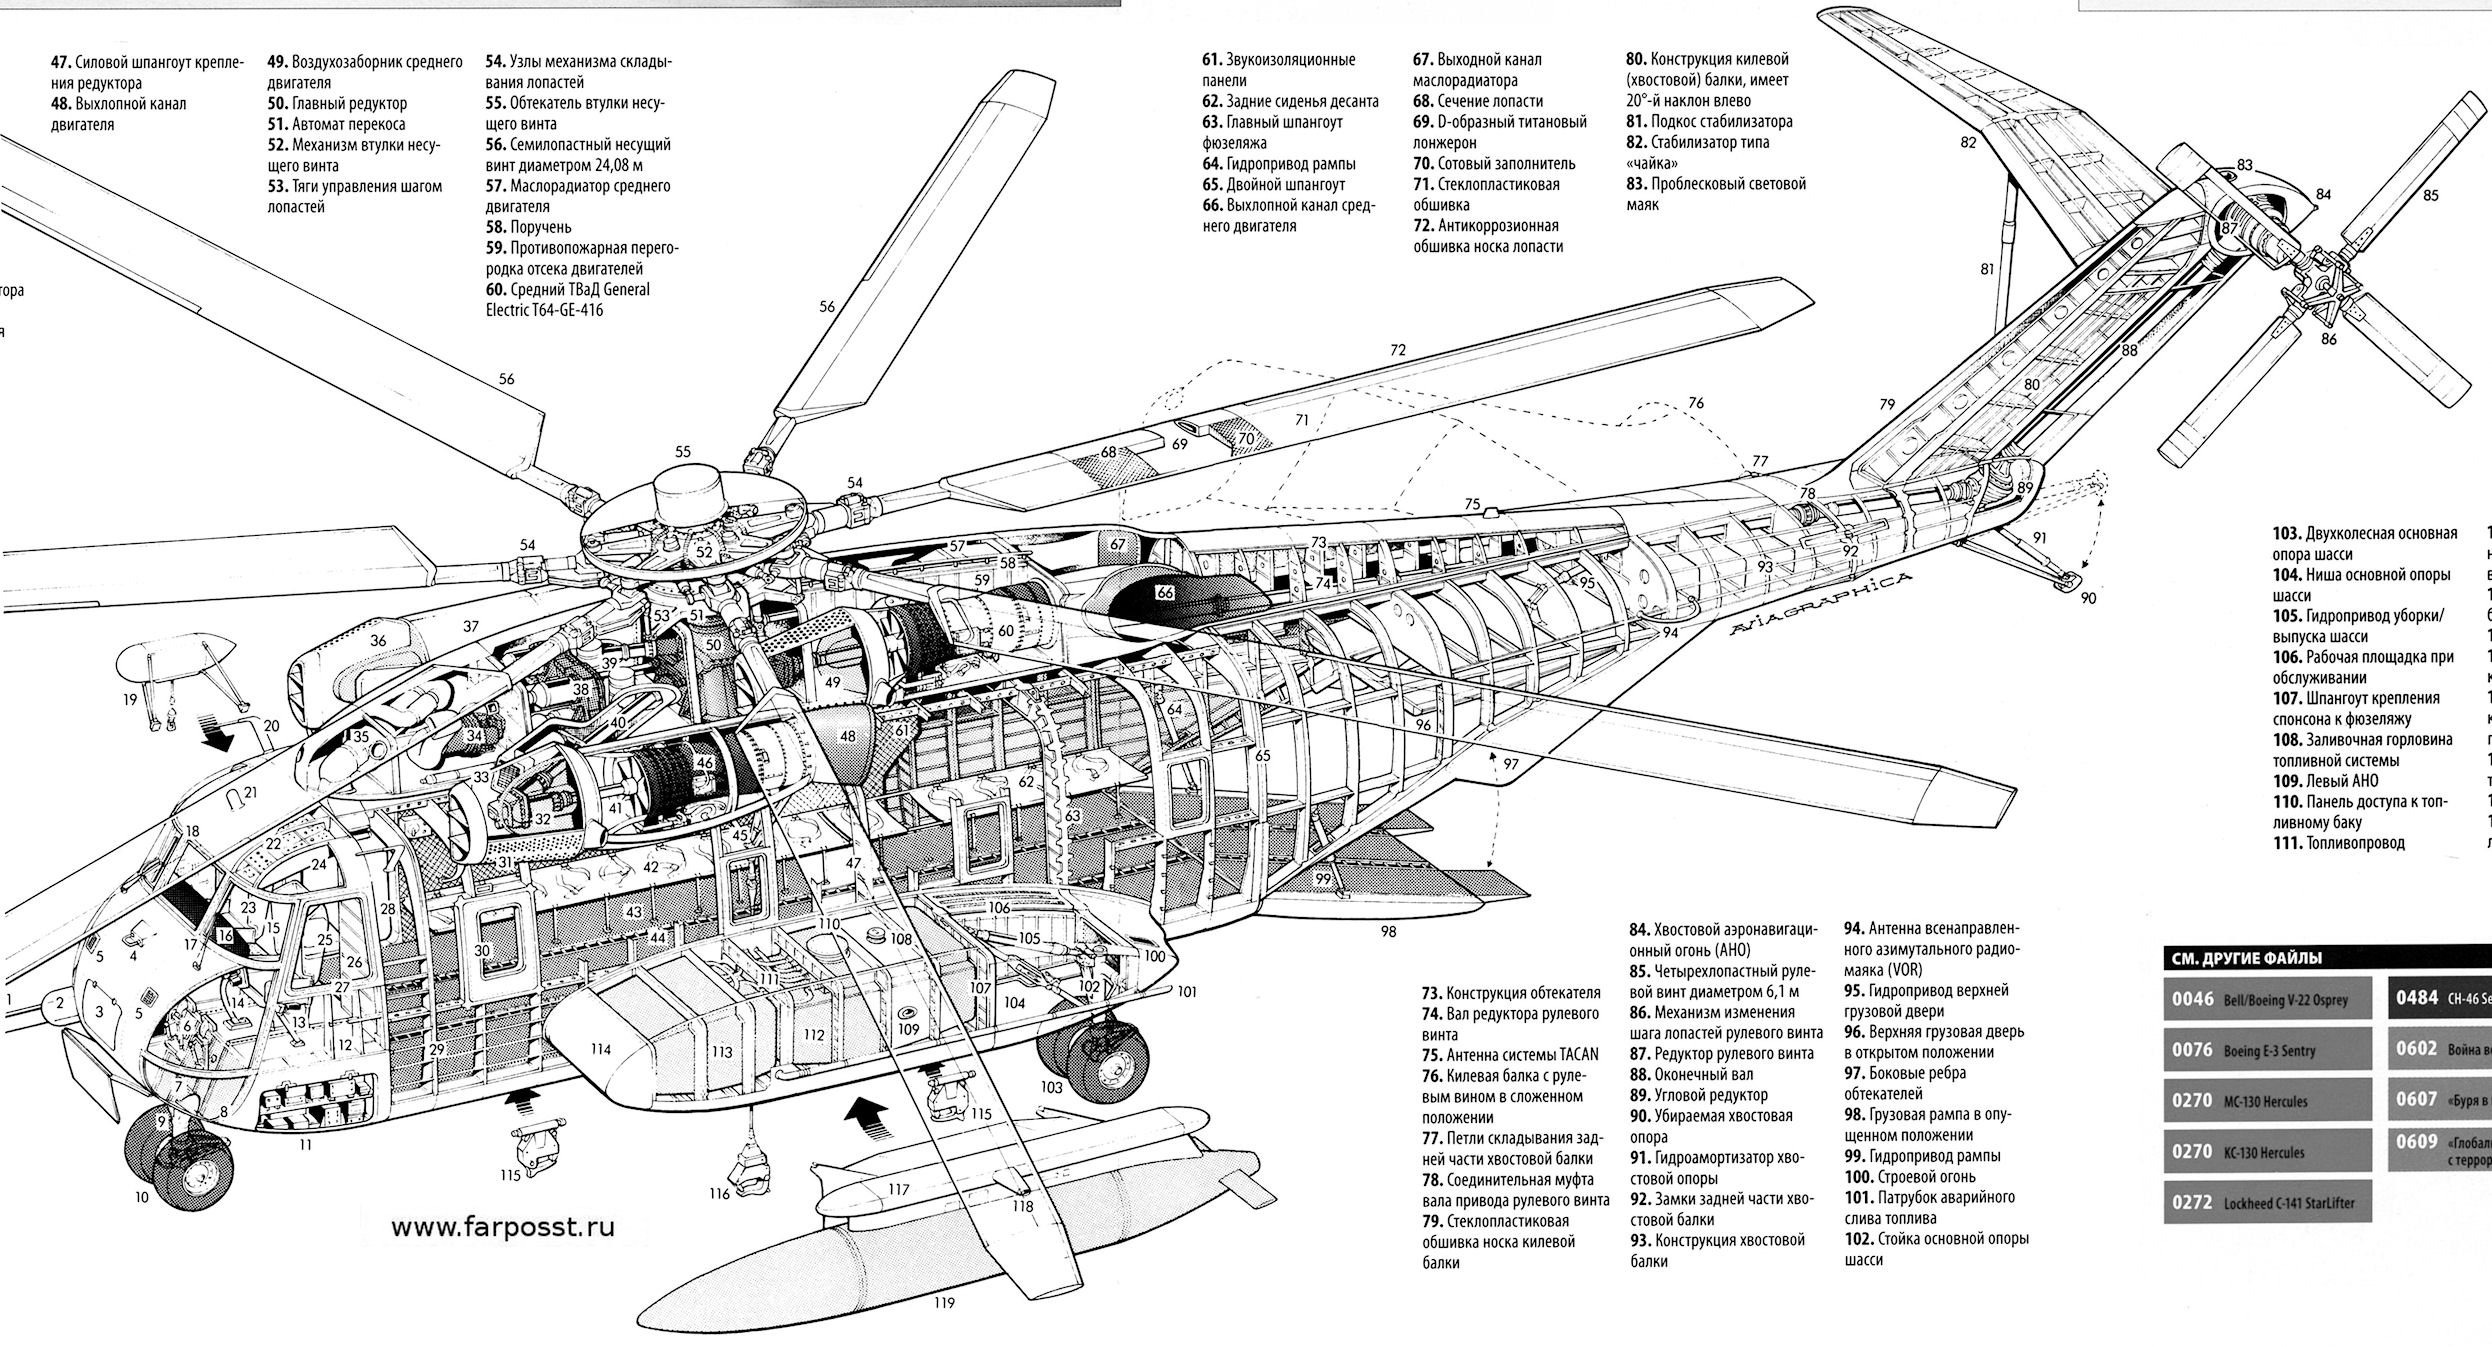 Helicopter Rotor System And Design Pdf